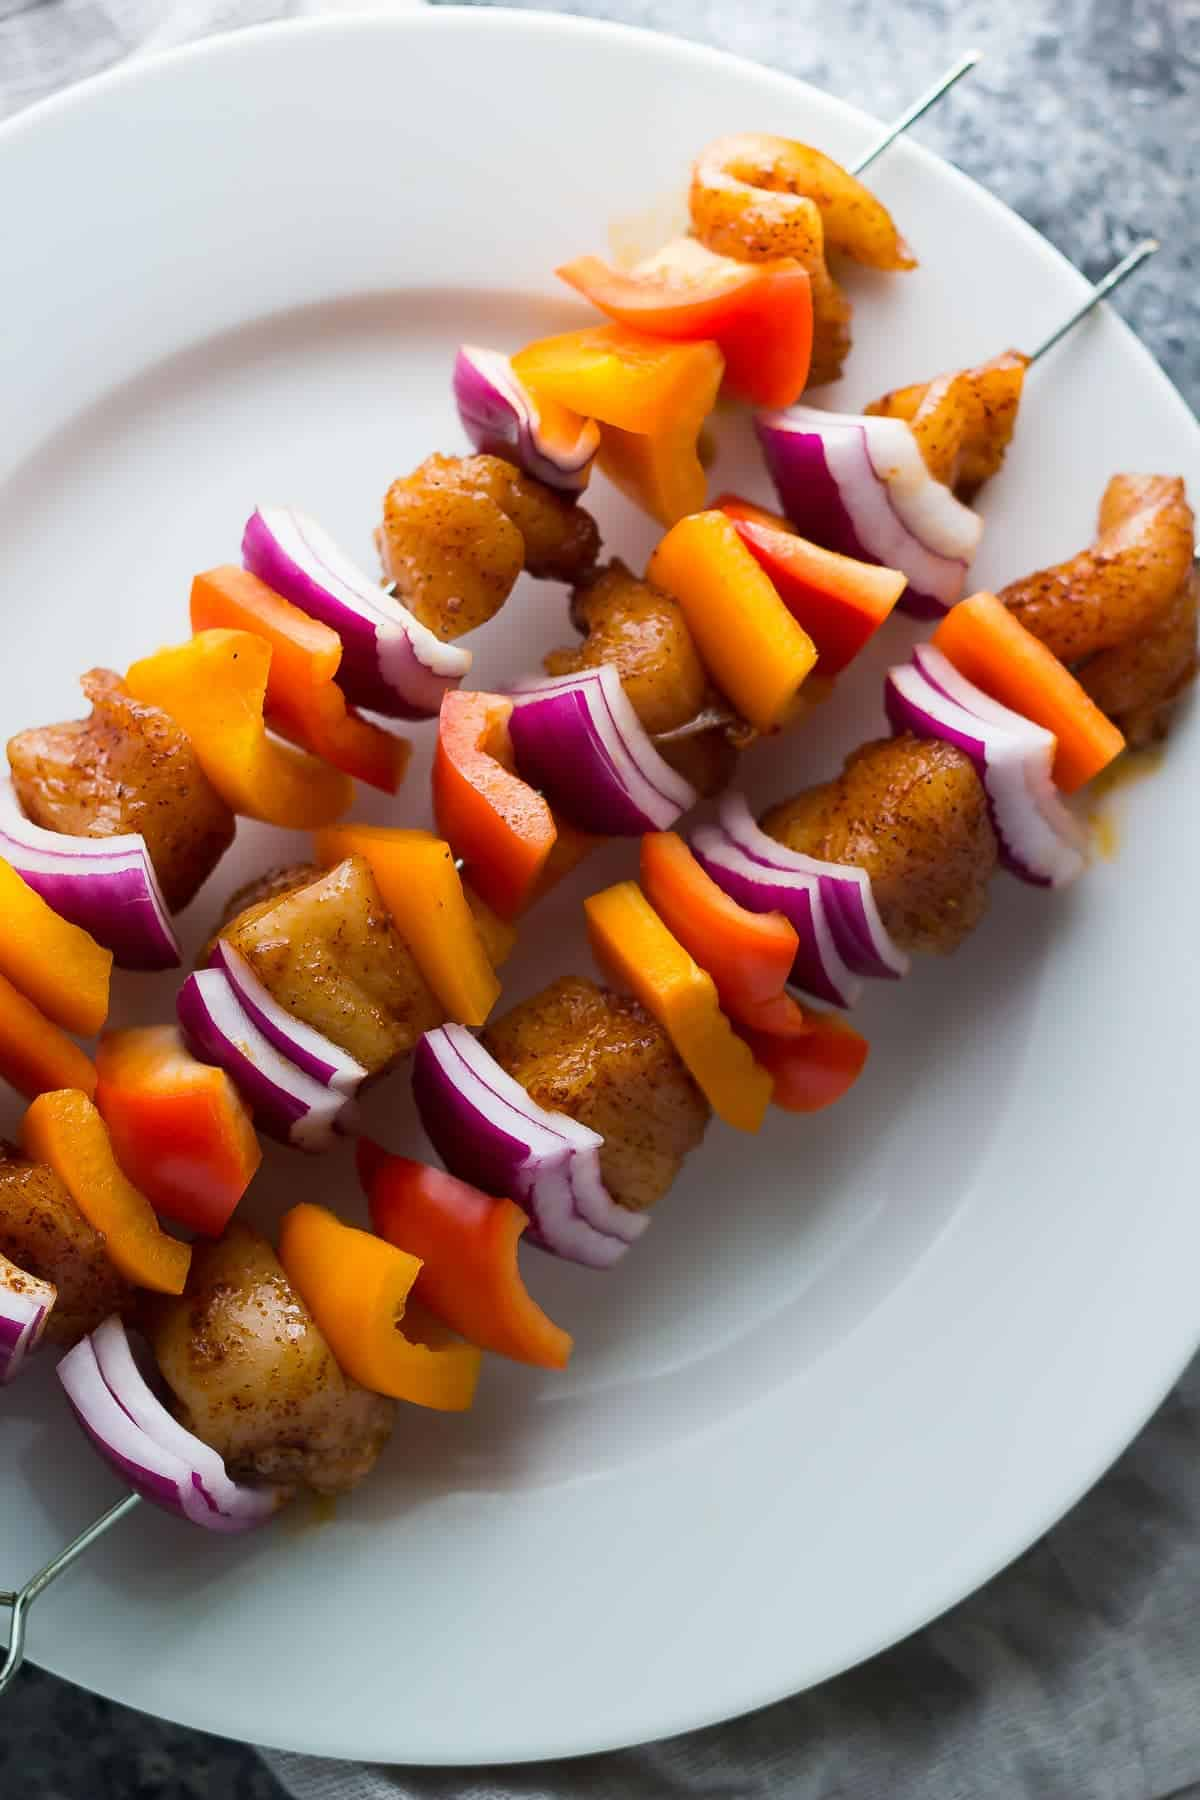 Chili Lime Chicken Skewers with Mango Sauce, an easy dinner recipe ready in 30 minutes